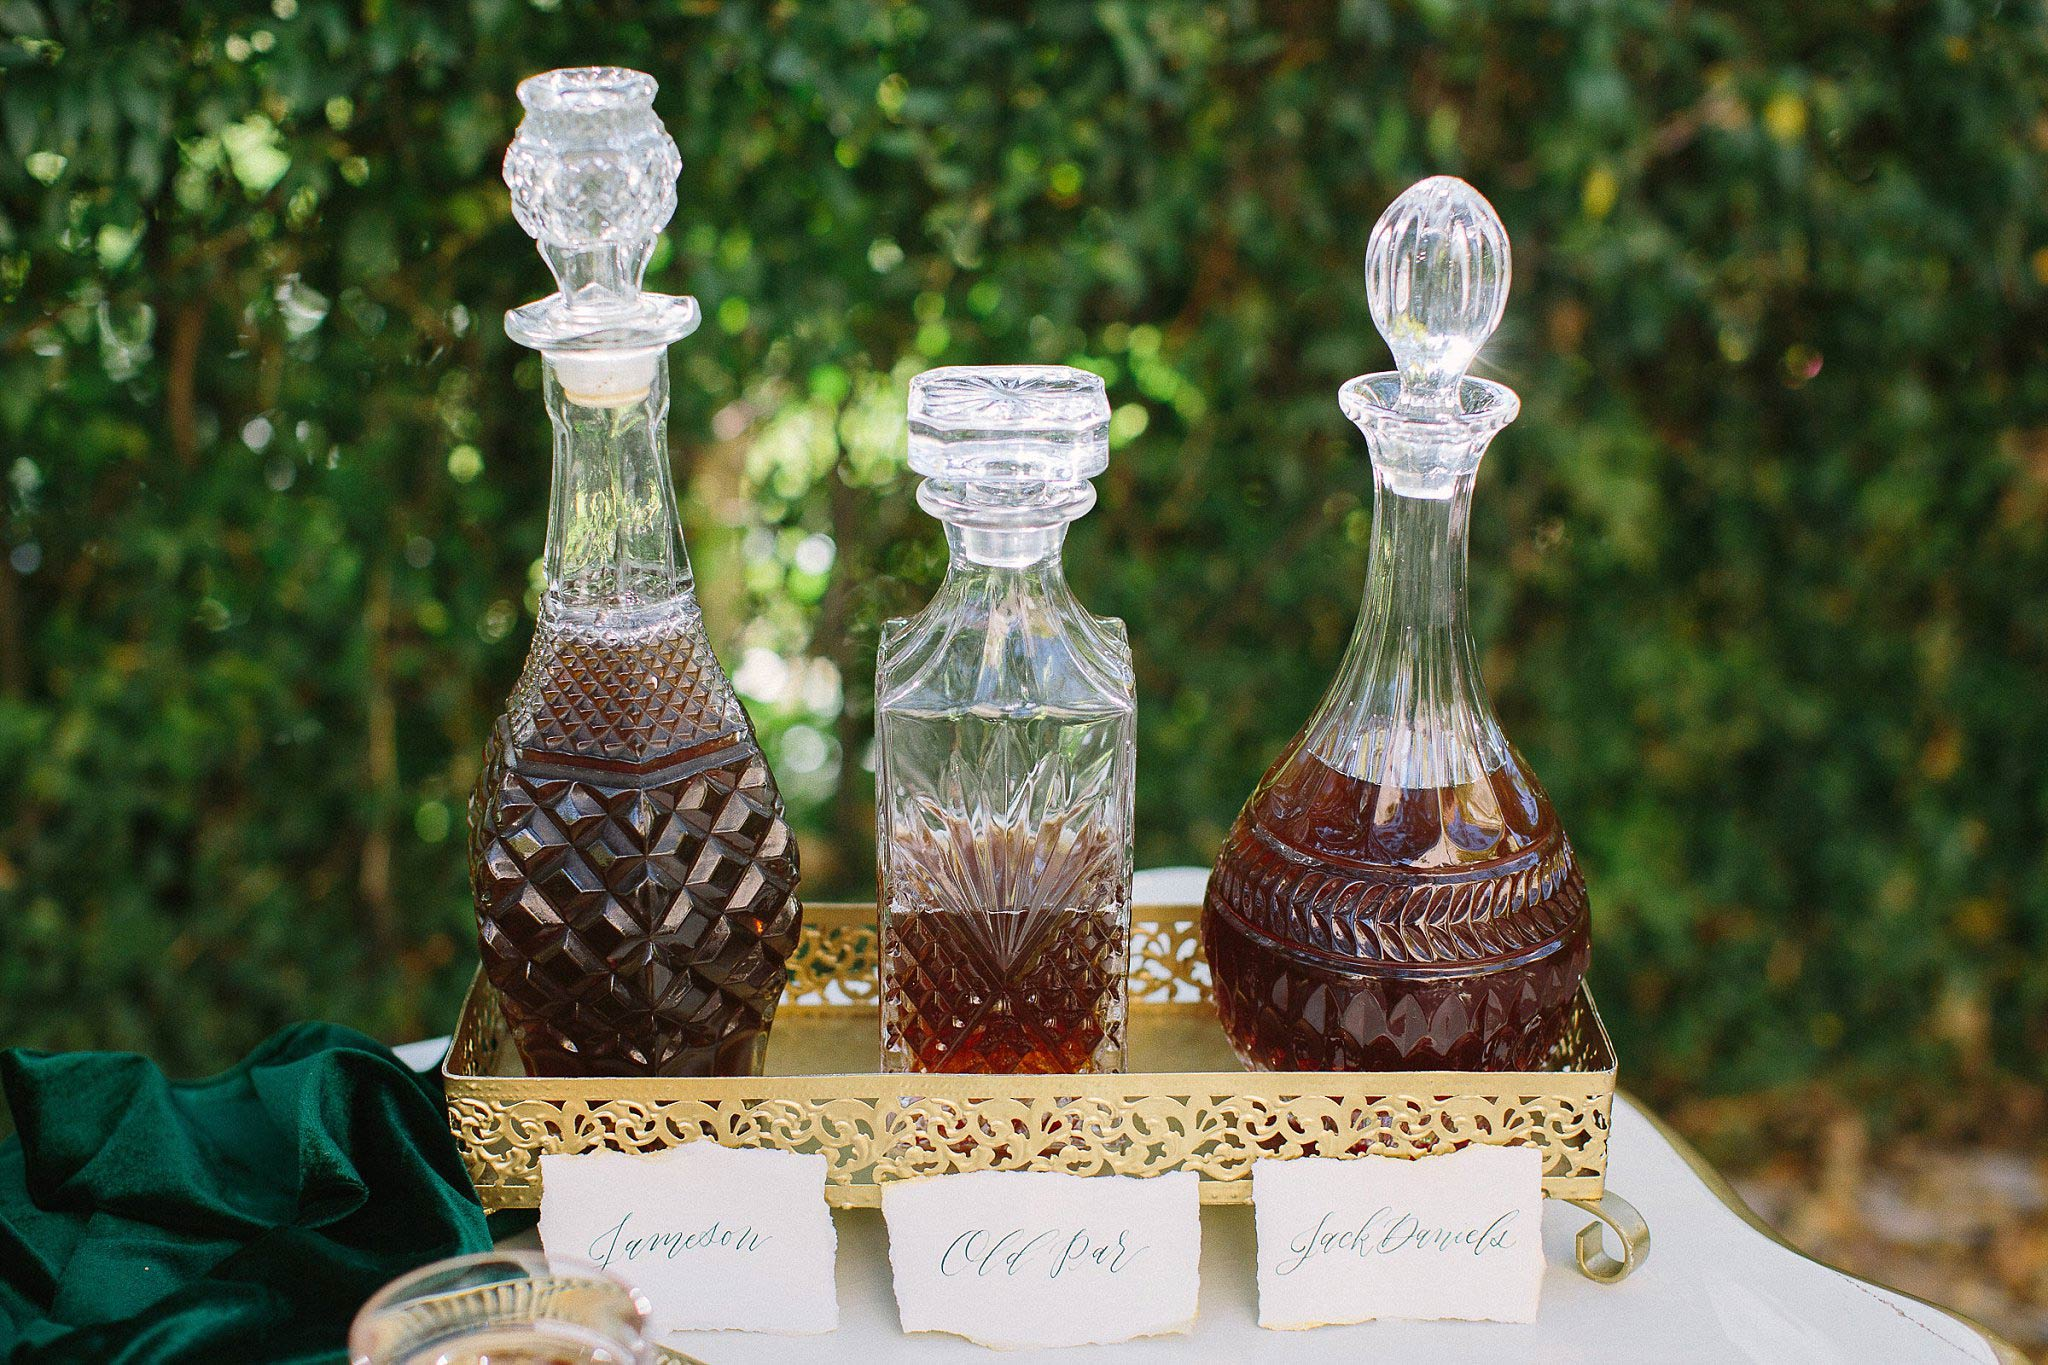 aristide mansfield wedding whiskey bar with antique decanters